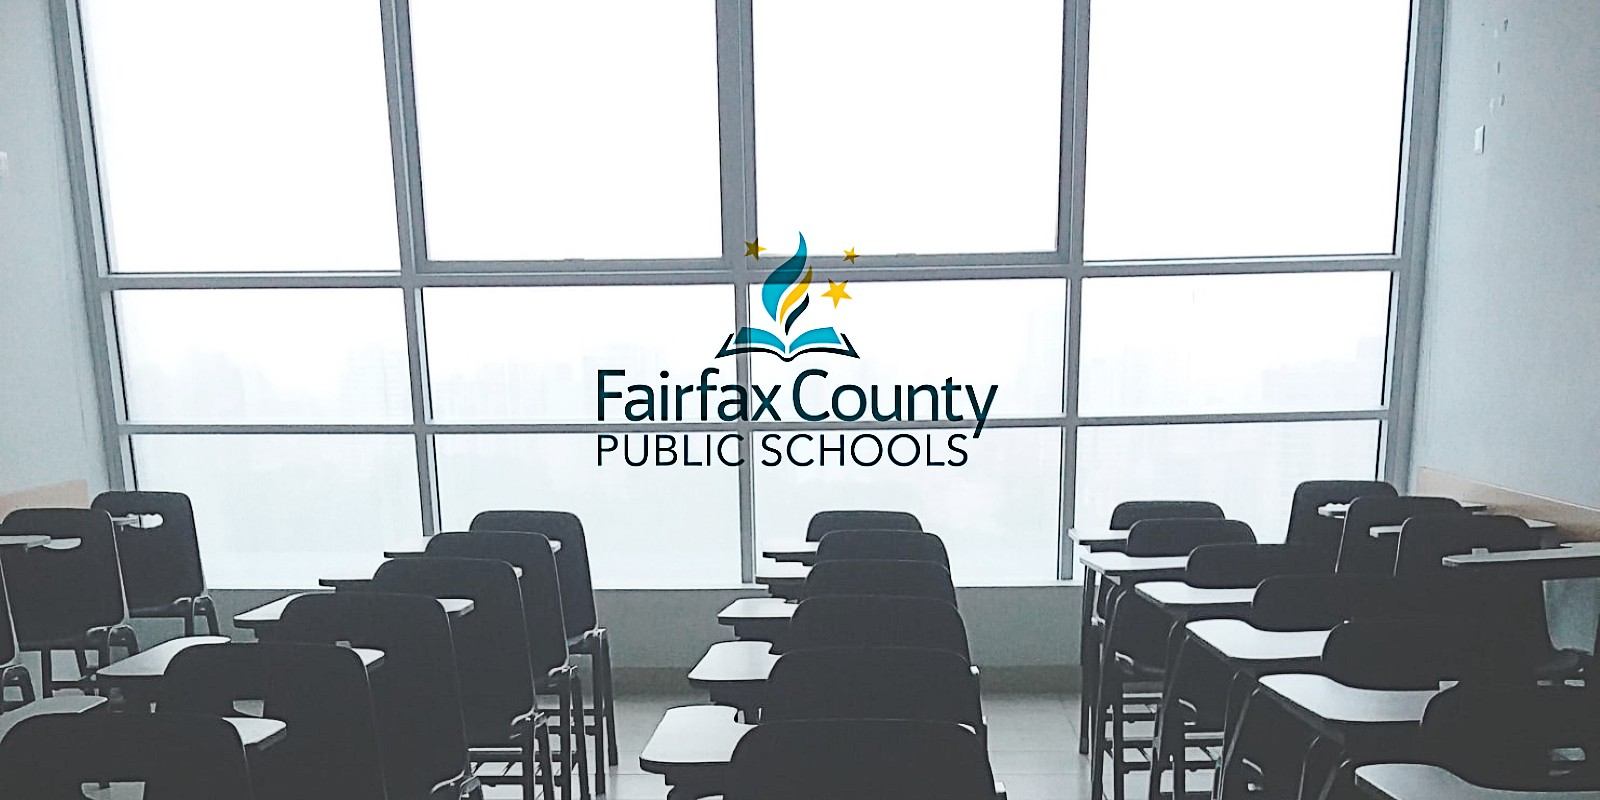 Fairfax County schools hit by Maze ransomware, student data leaked